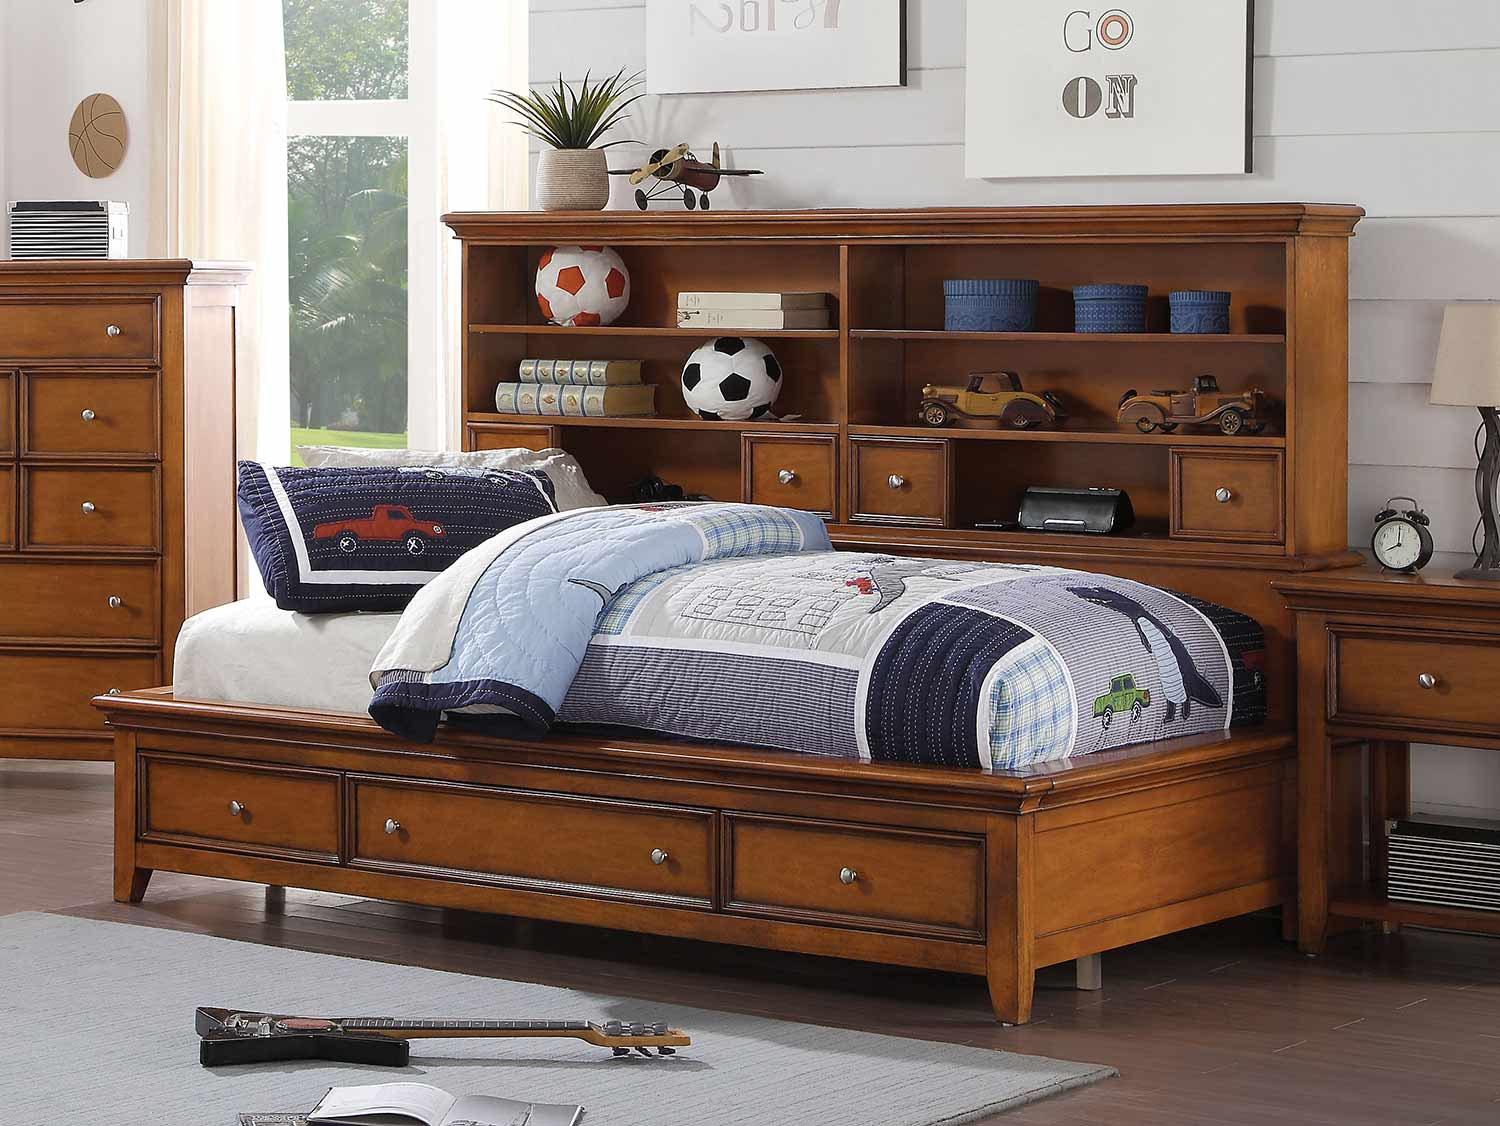 Acme Lacey Daybed with Storage - Cherry Oak